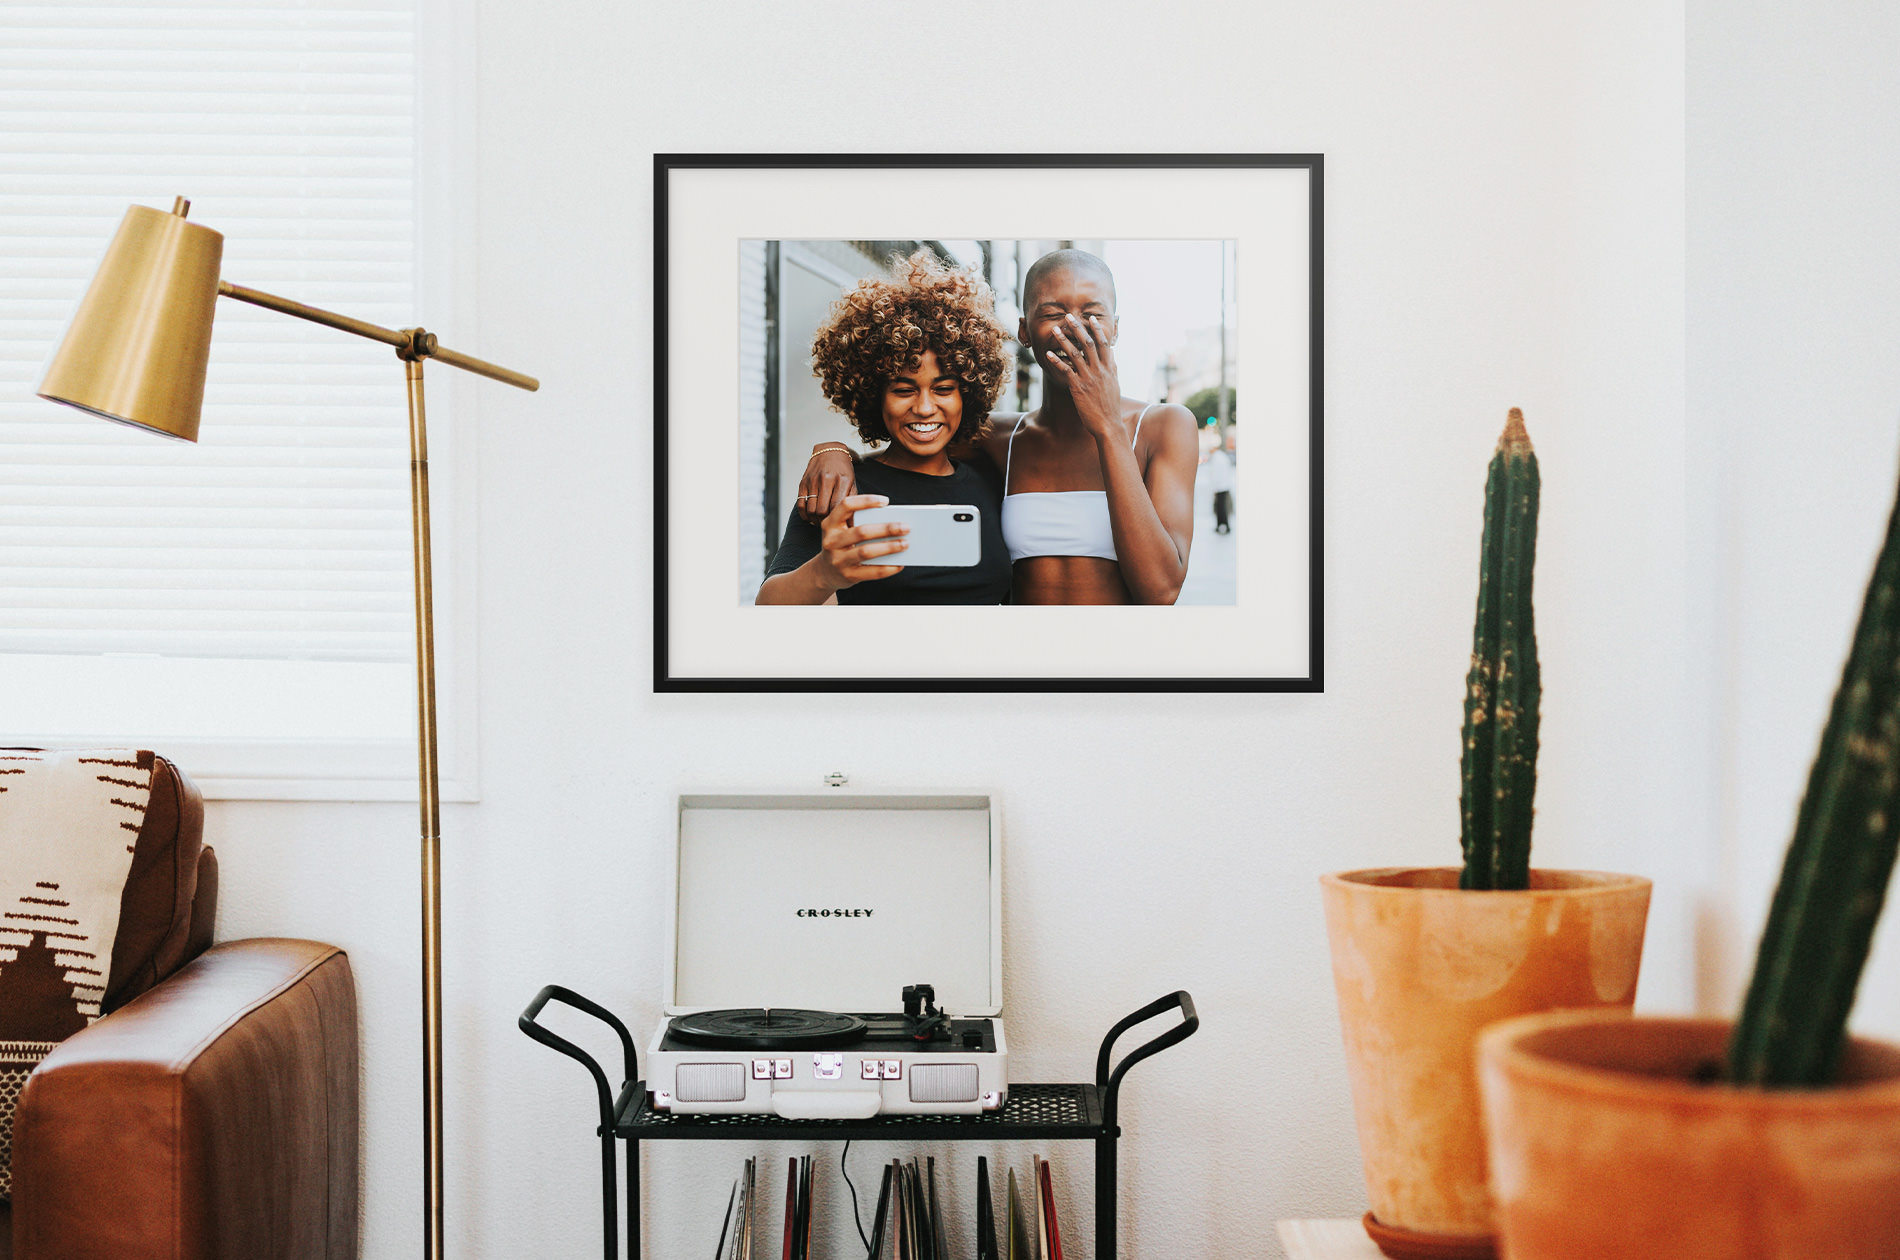 Black Metal Gallery Frame displayed in home showing photo of two friends laughing